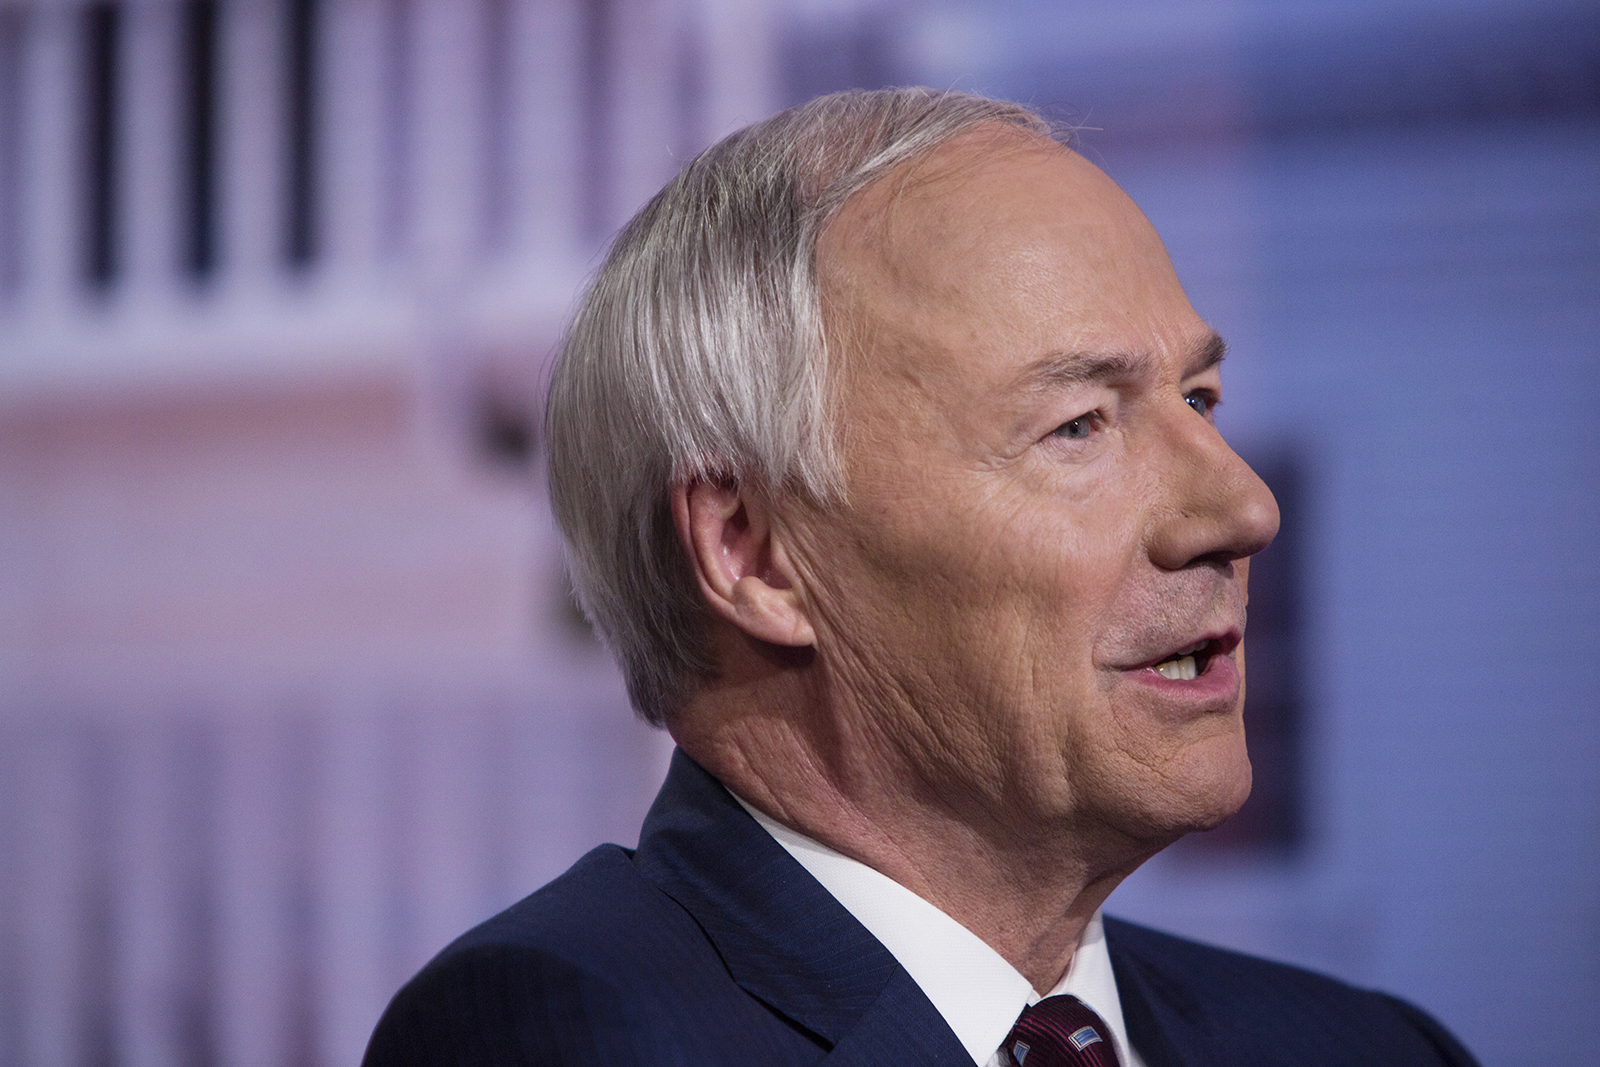 Gov. Asa Hutchinson speaks during a Bloomberg Television interview in New York on May 28, 2019.